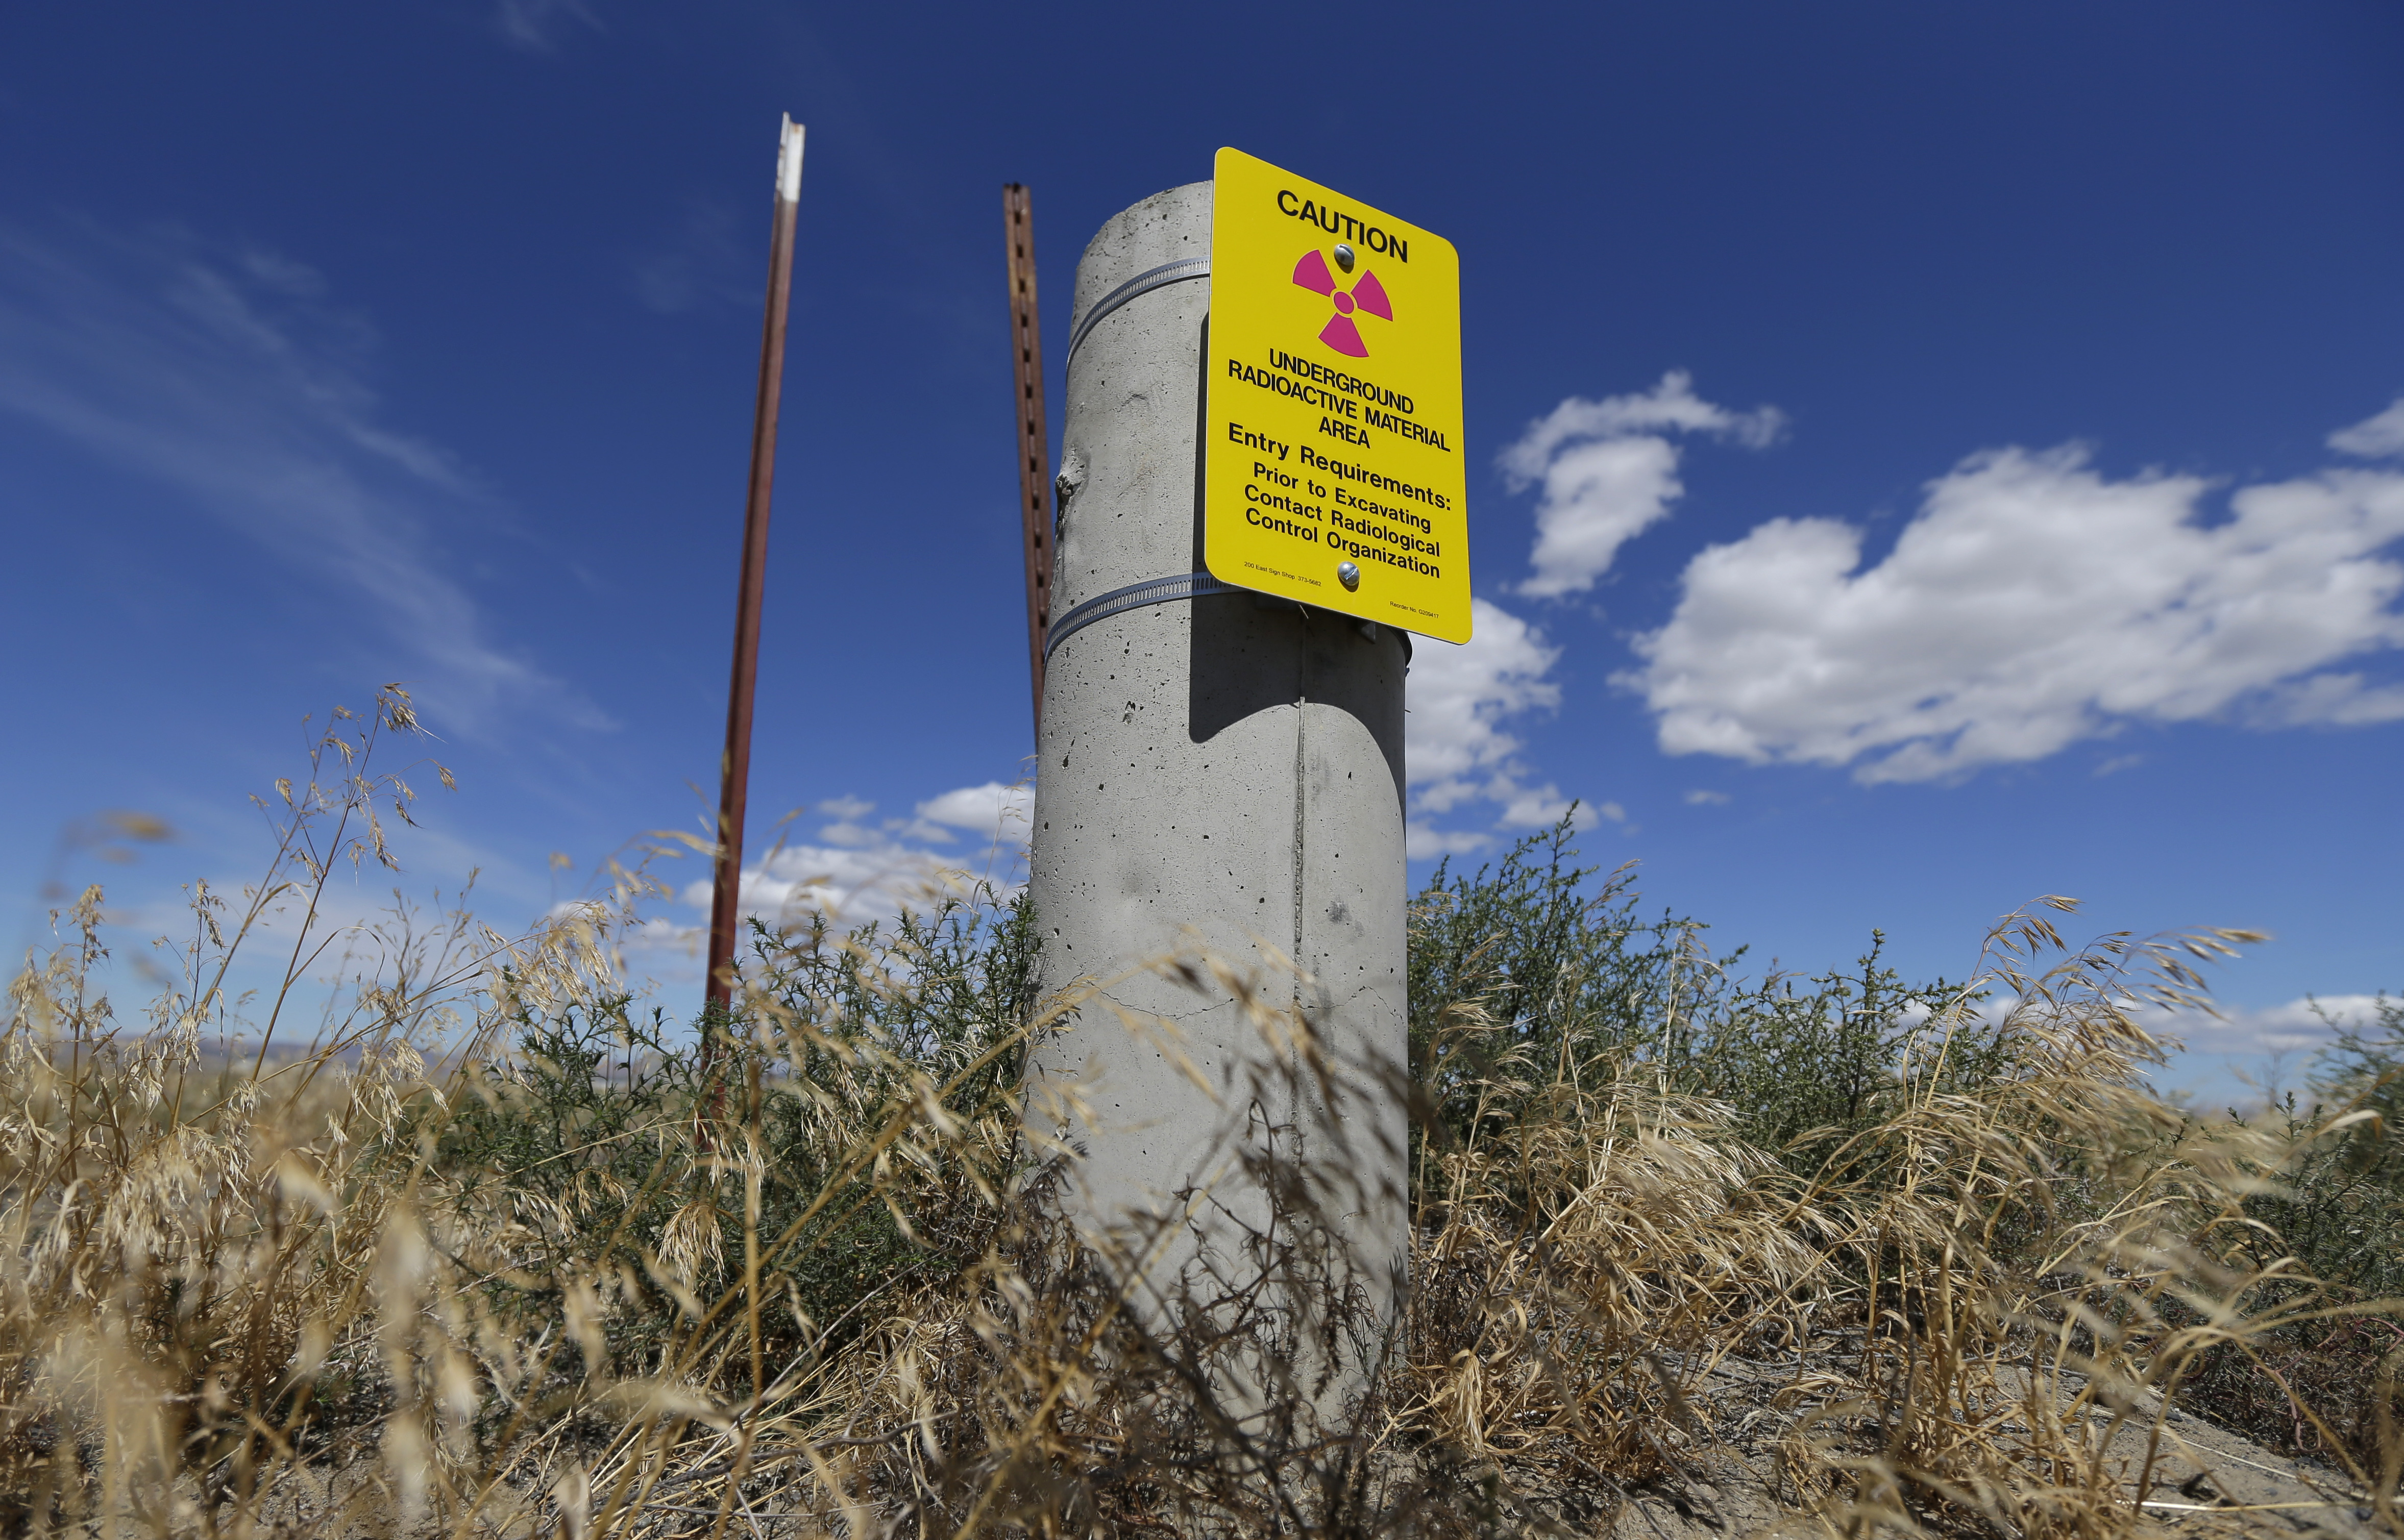 Hanford Nuclear Waste-6 In this photo taken July 11, 2016, a sign warns of radioactive material stored underground on the Hanford Nuclear Reservation near Richland, Wash. The U.S. Energy Department's top official at Washington state's severely contaminated nuclear reservation says future accidental nuclear radiation releases are likely because of aging site infrastructure and inadequate cleanup funding. Hundreds were evacuated May 9, 2017 when the roof of a 1950s rail tunnel storing a lethal mix of waste from plutonium production collapsed. Tests show no radiation was released. (AP Photo/Ted S. Warren)